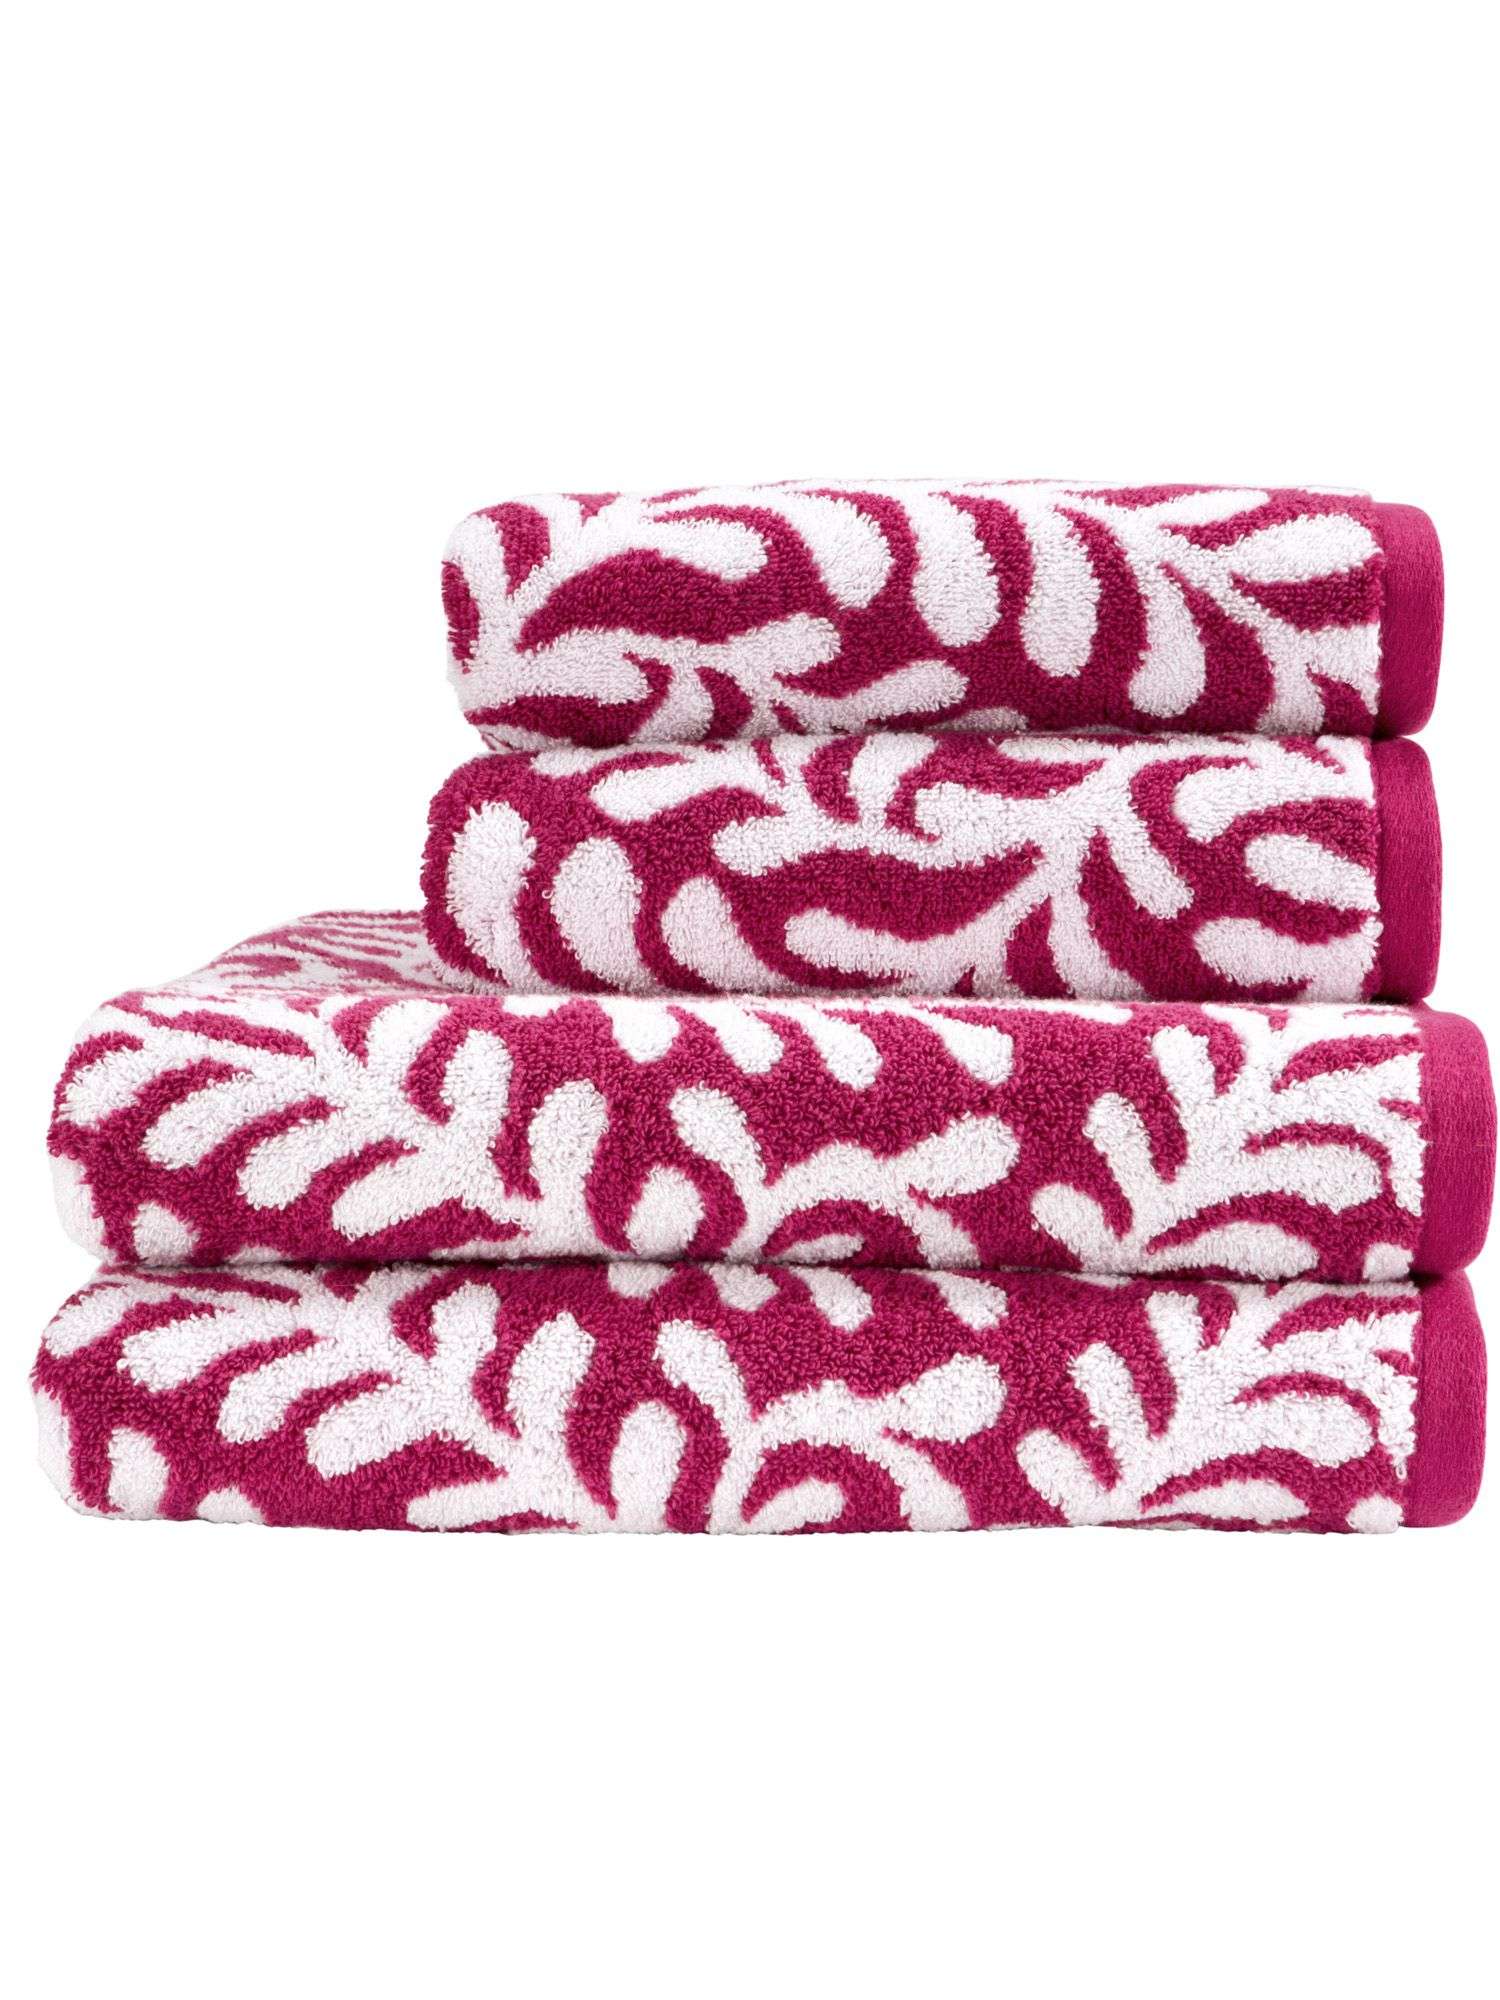 Botanical towel range in summer pudding